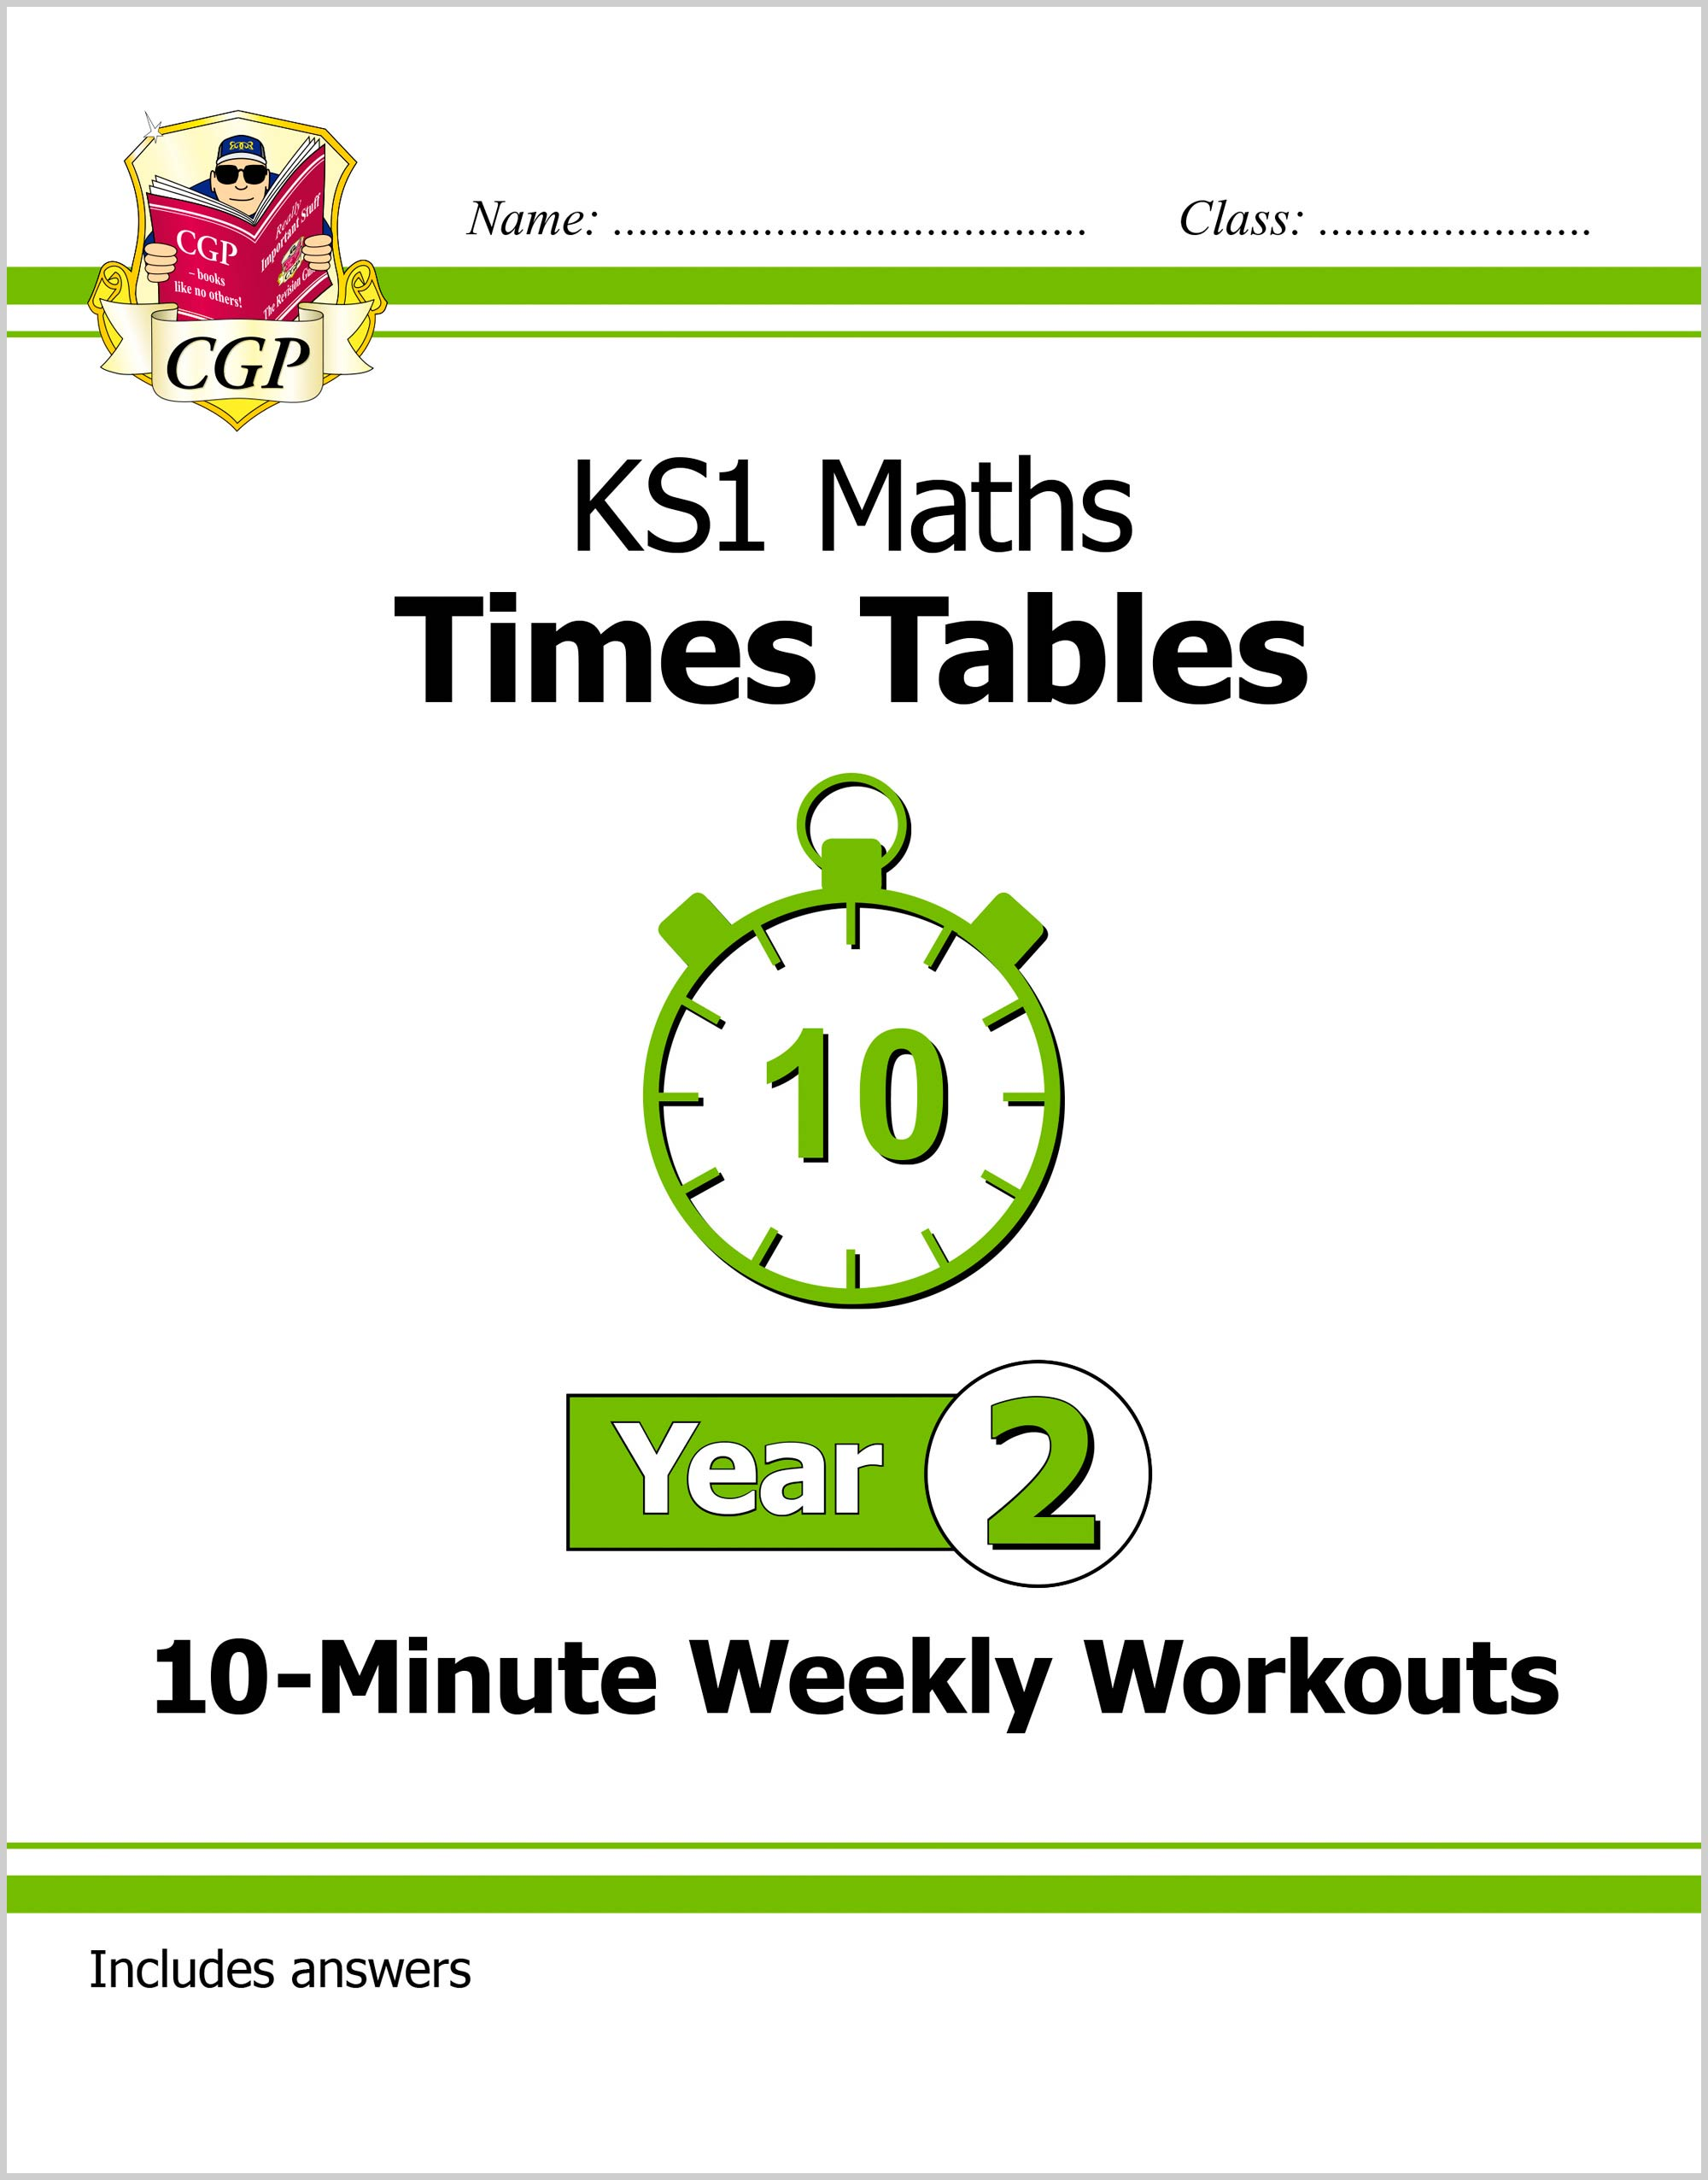 M2TXW11DK - New KS1 Maths: Times Tables 10-Minute Weekly Workouts - Year 2